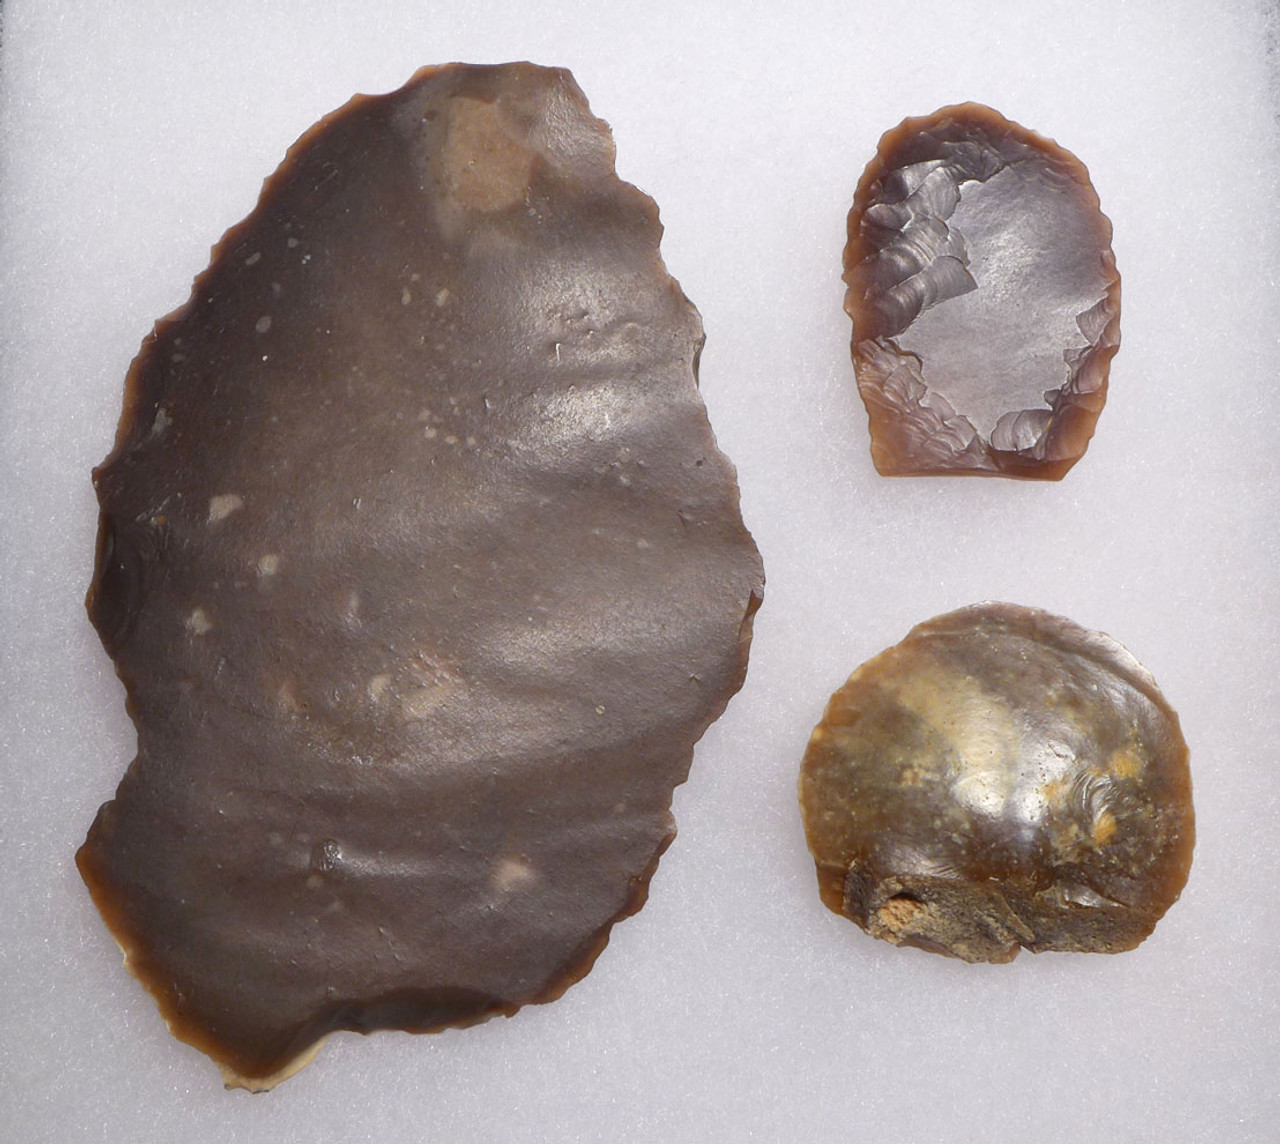 THREE FINEST FLINT SCRAPERS OF RARE TYPES FROM THE AFRICAN CAPSIAN NEOLITHIC *CAP237